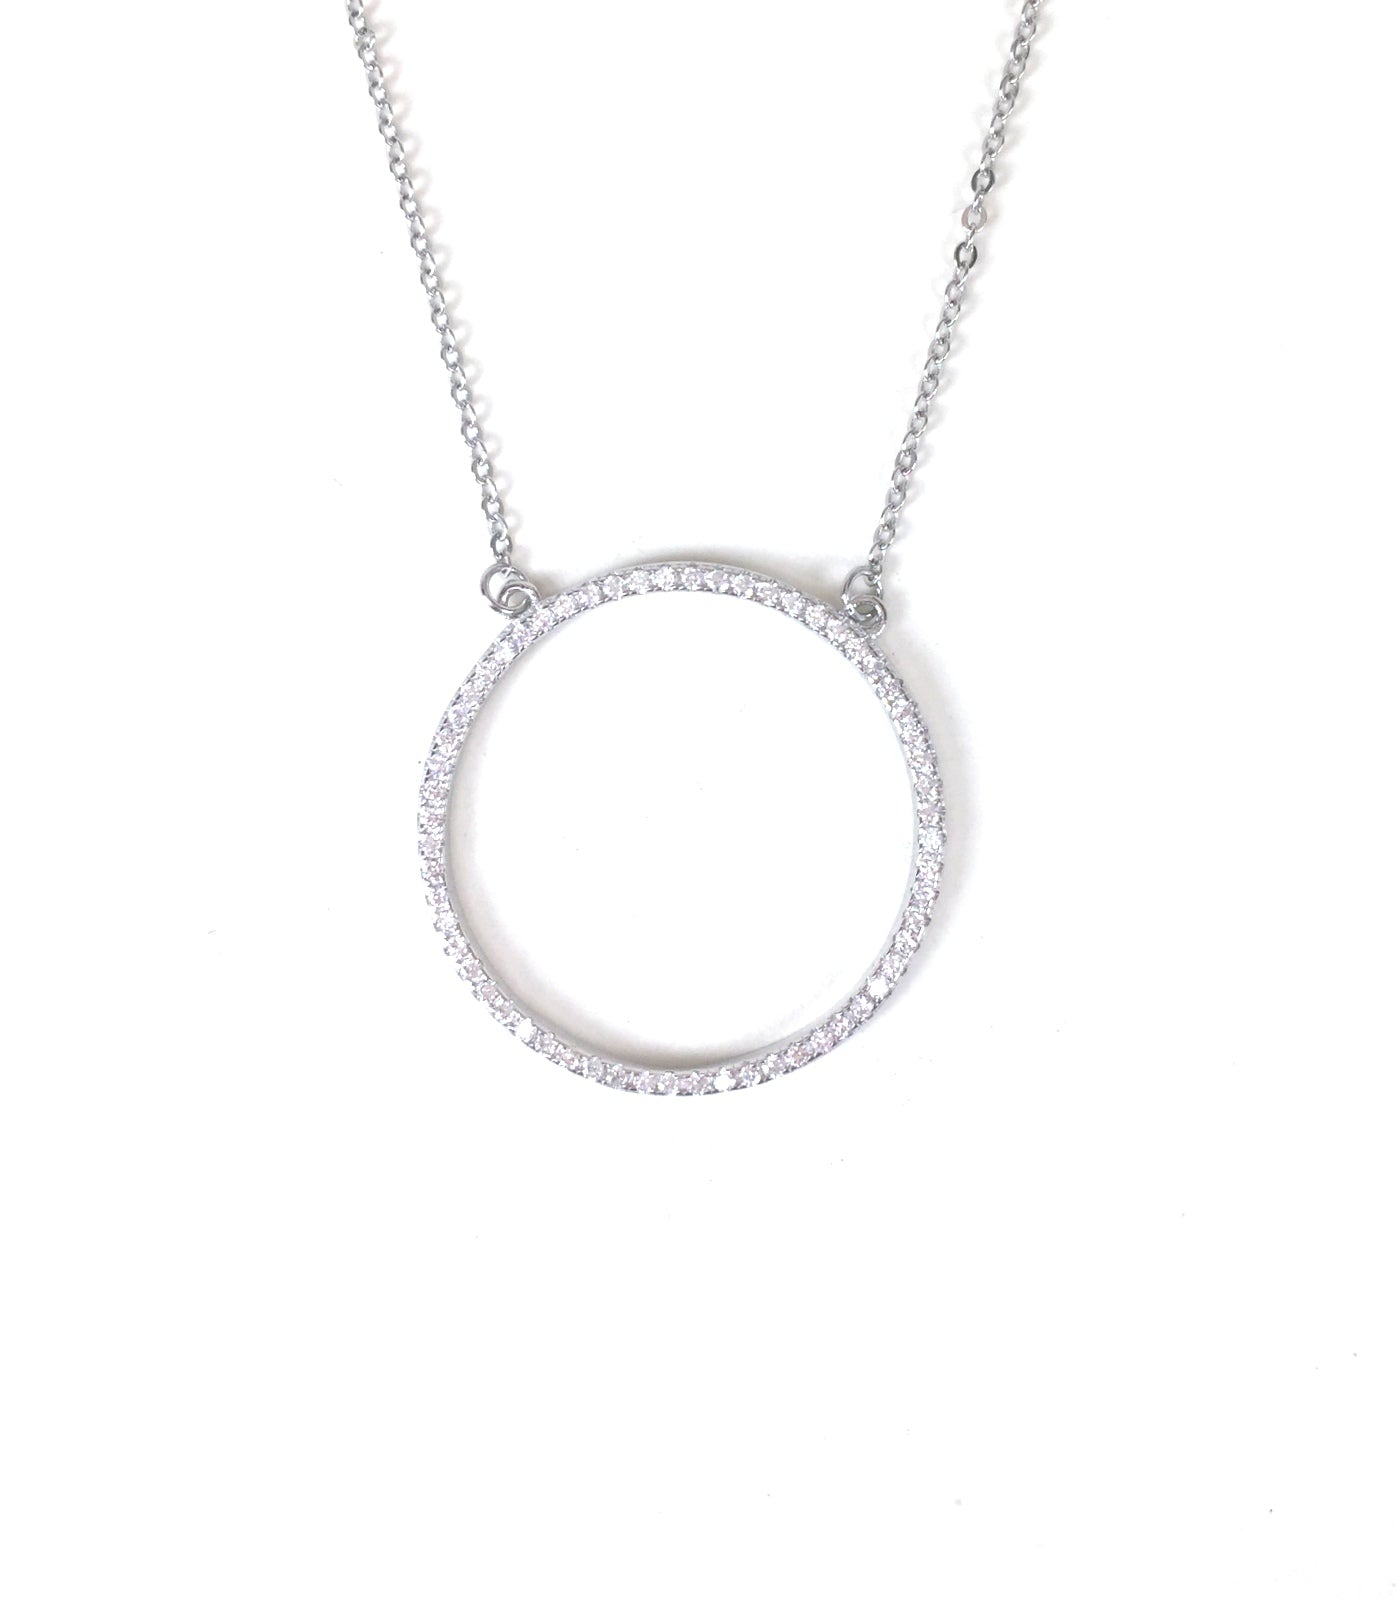 BIG CIRCLE PAVE CZ STERLING SILVER NECKLACE